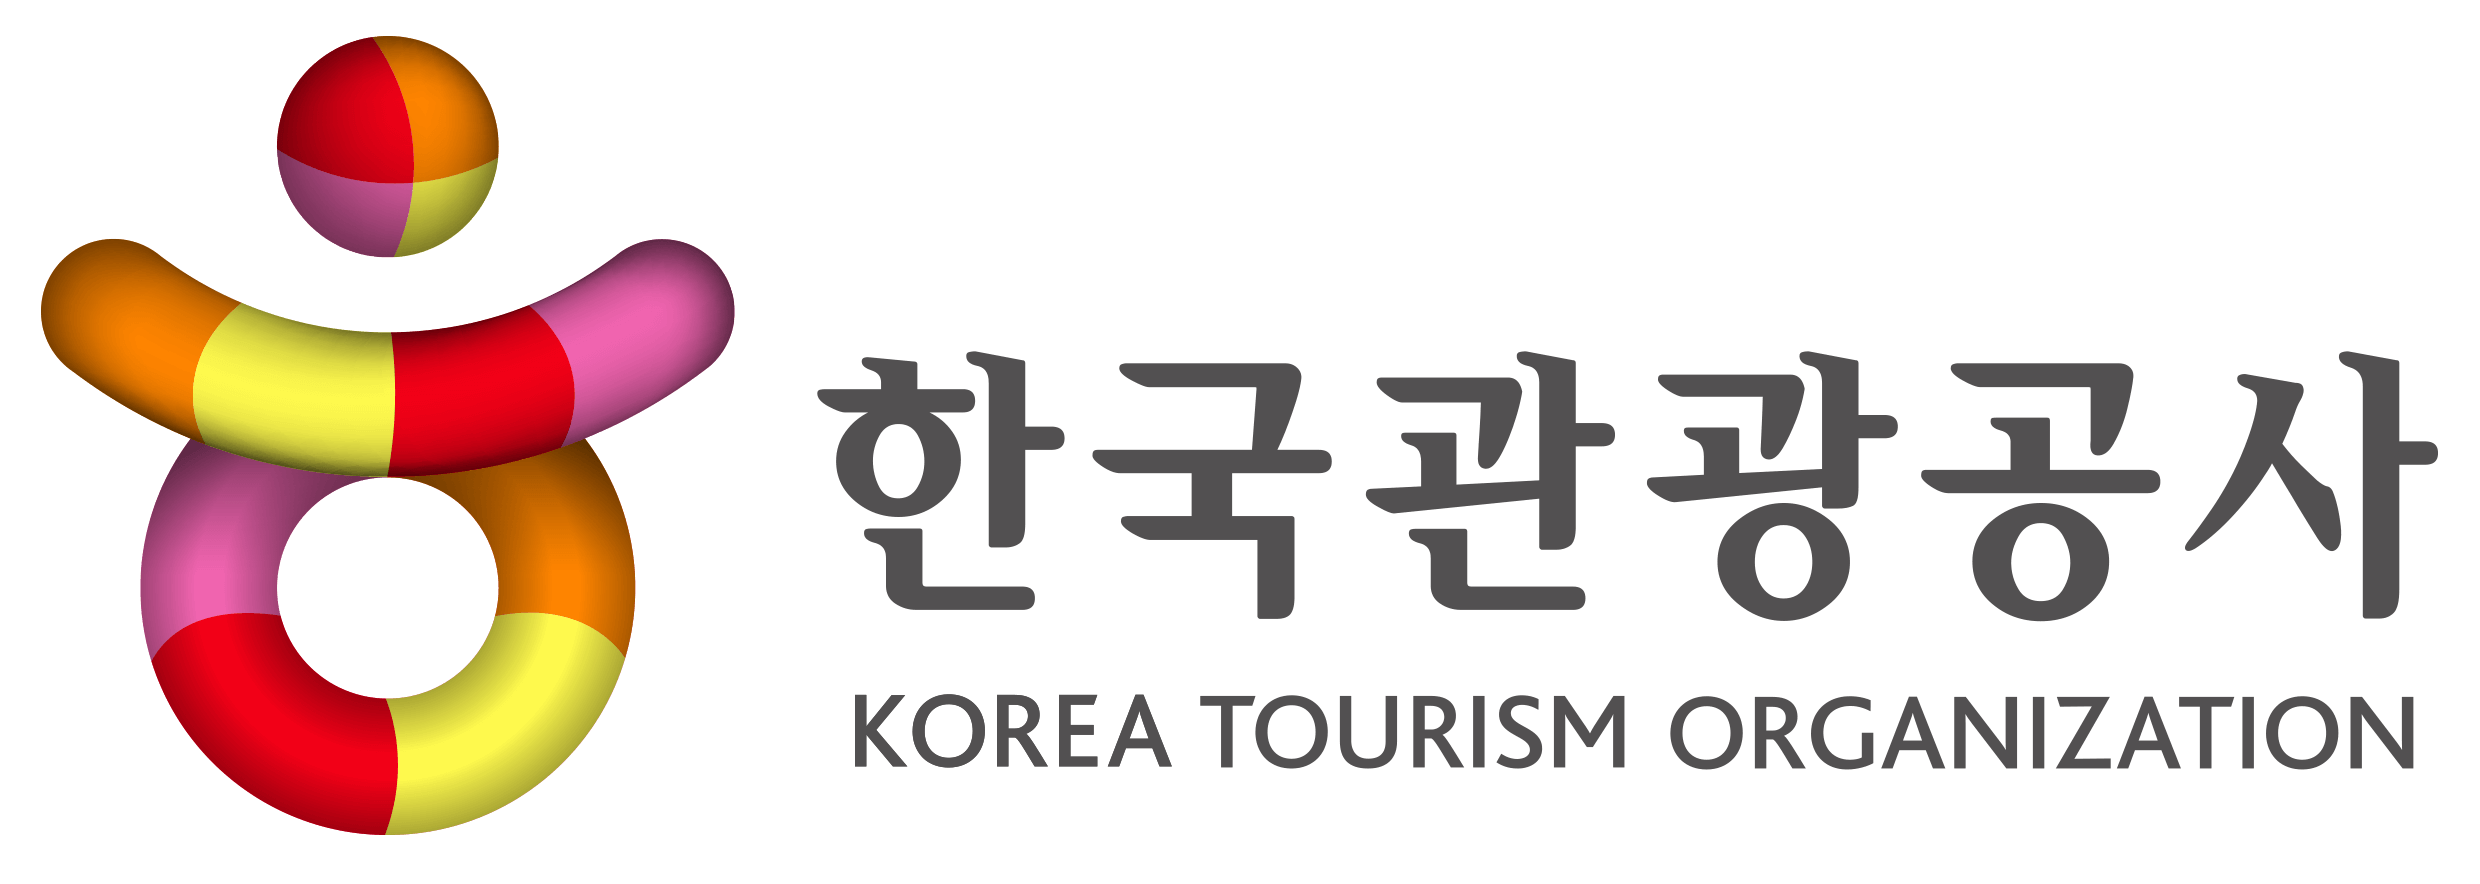 "KOREA TOURISM ORGANIZATION (KTO) JAKARTA IS HIRING FOR ""MARKETING OFFICER FOR MEDICAL TOURISM"" (KOREAN LANGUAGE MANDATORY)"